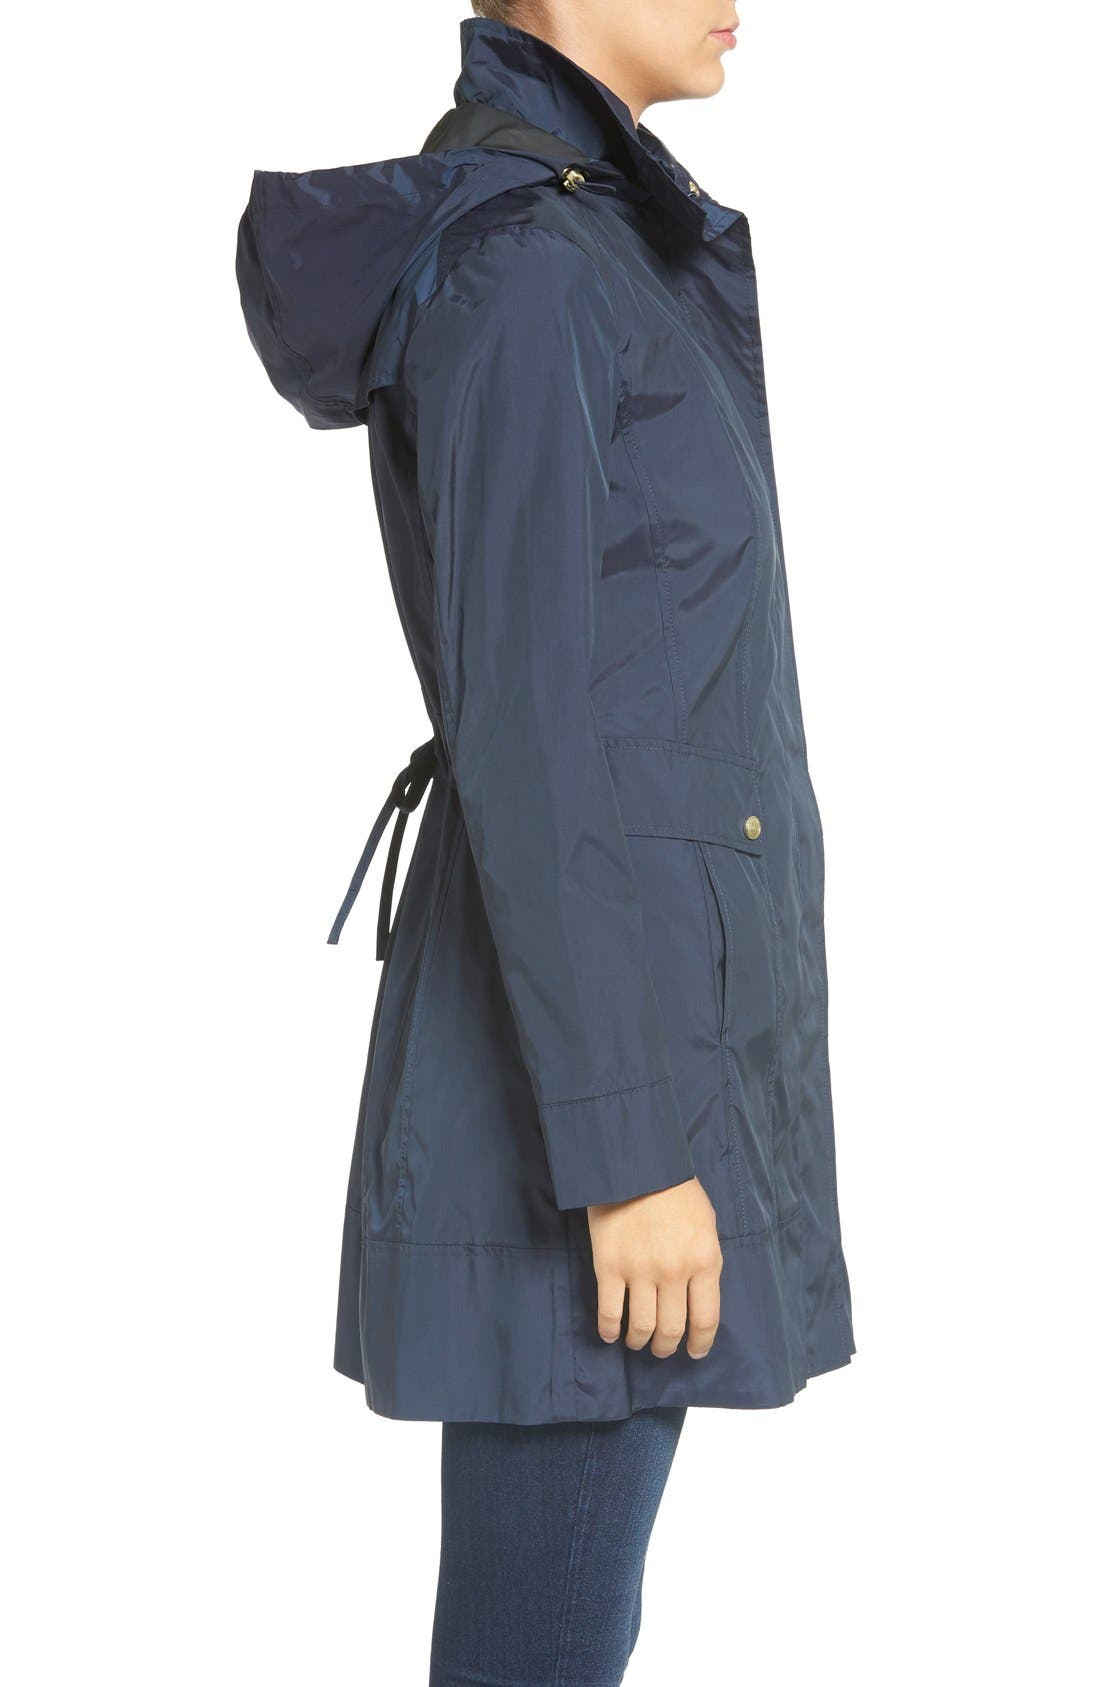 Alternate Image 3  - Cole Haan Signature Back Bow Packable Hooded Raincoat (Regular & Petite)